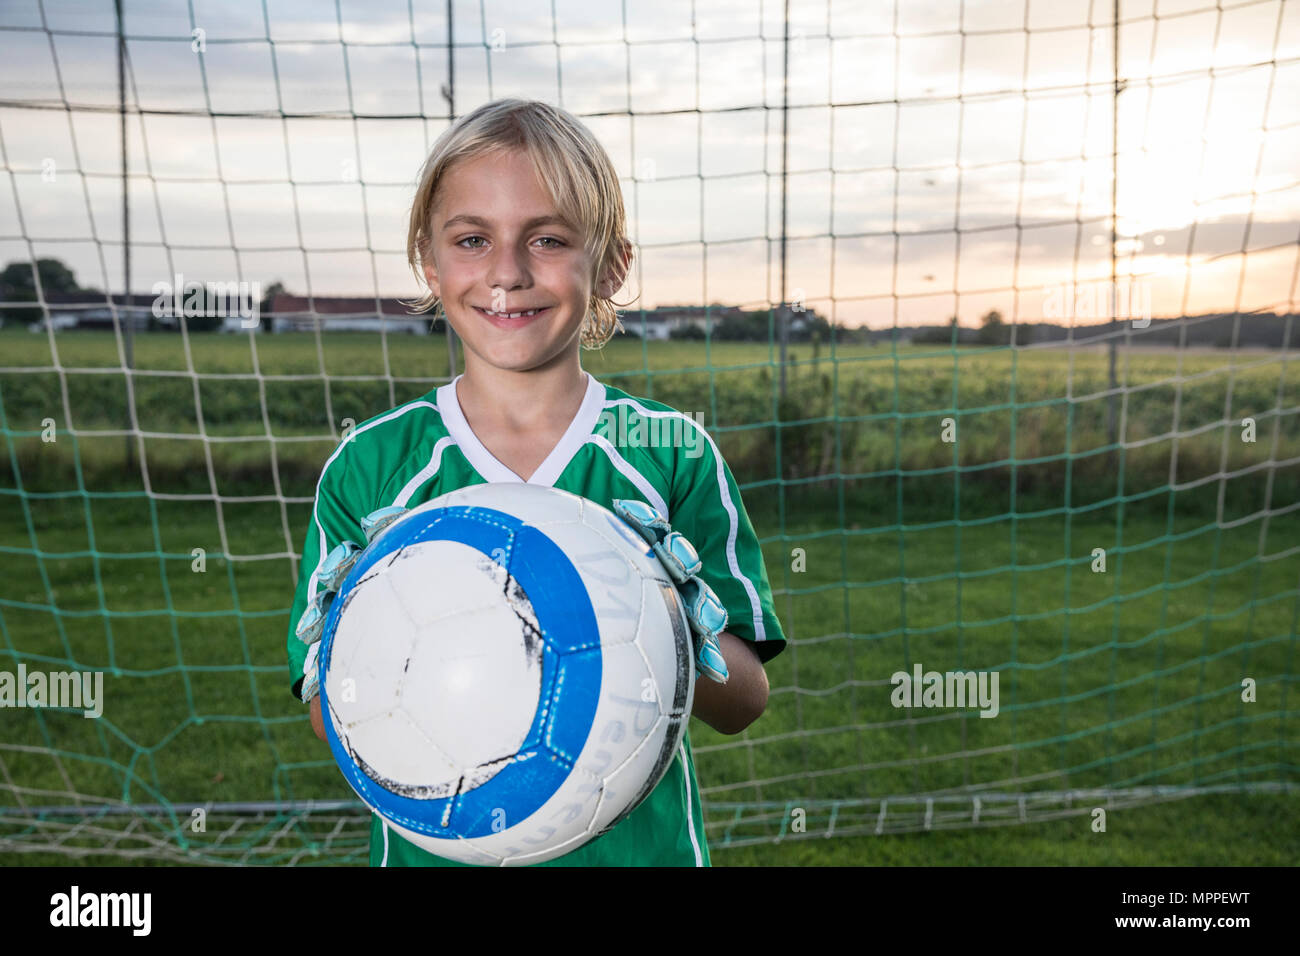 Portrait of smiling young football goalkeeper holding ball on football ground - Stock Image